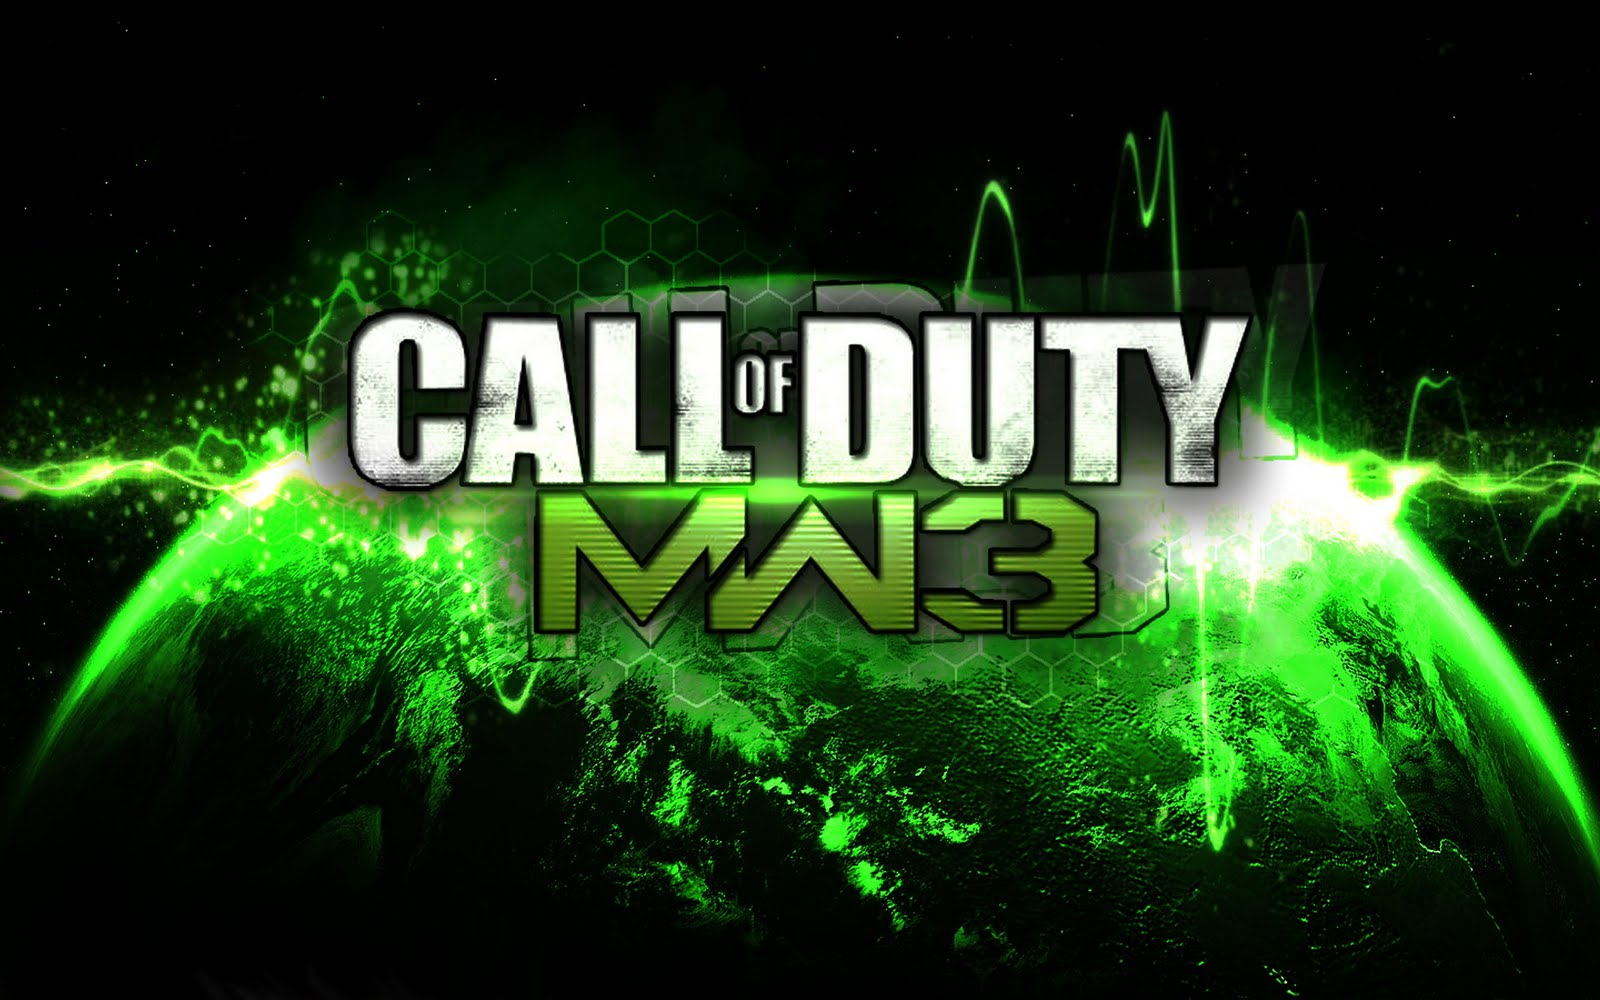 call of duty modern warfare essay Call of duty is one of video games most successful franchises especially infinity ward's modern warfare series with sales setting records after each new game is released not only did modern.